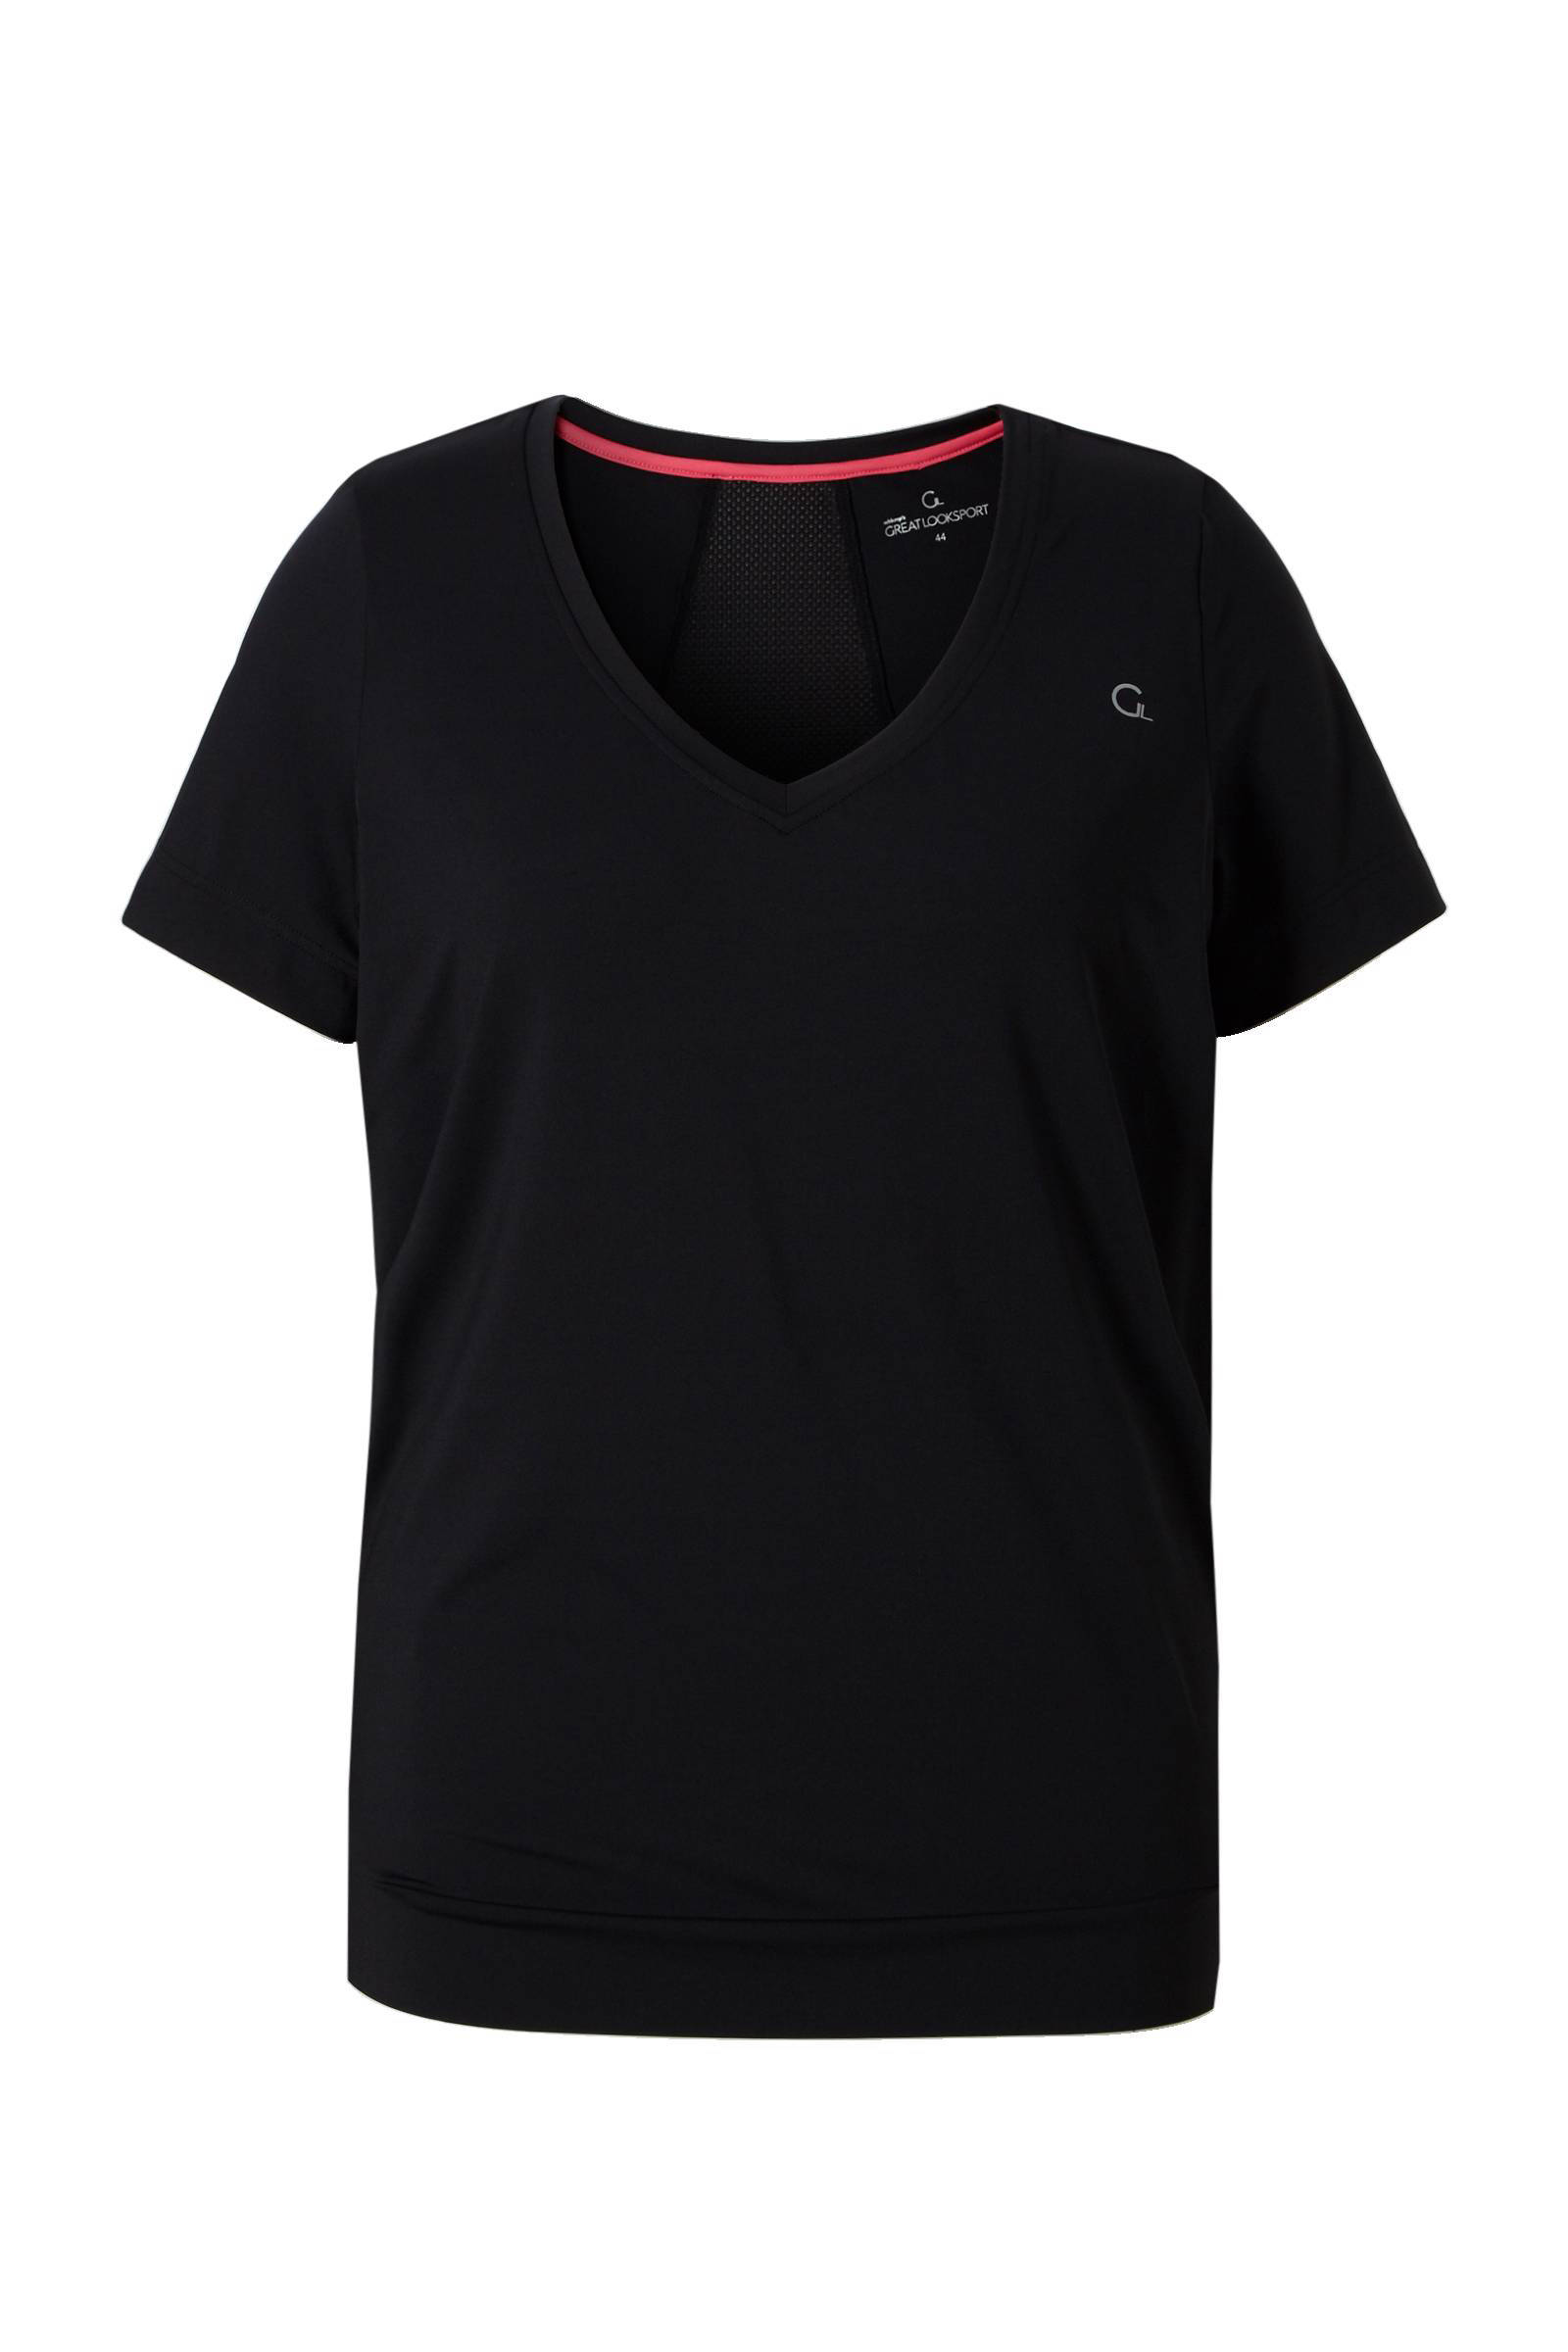 whkmp's great looks sport sport T-shirt (dames)